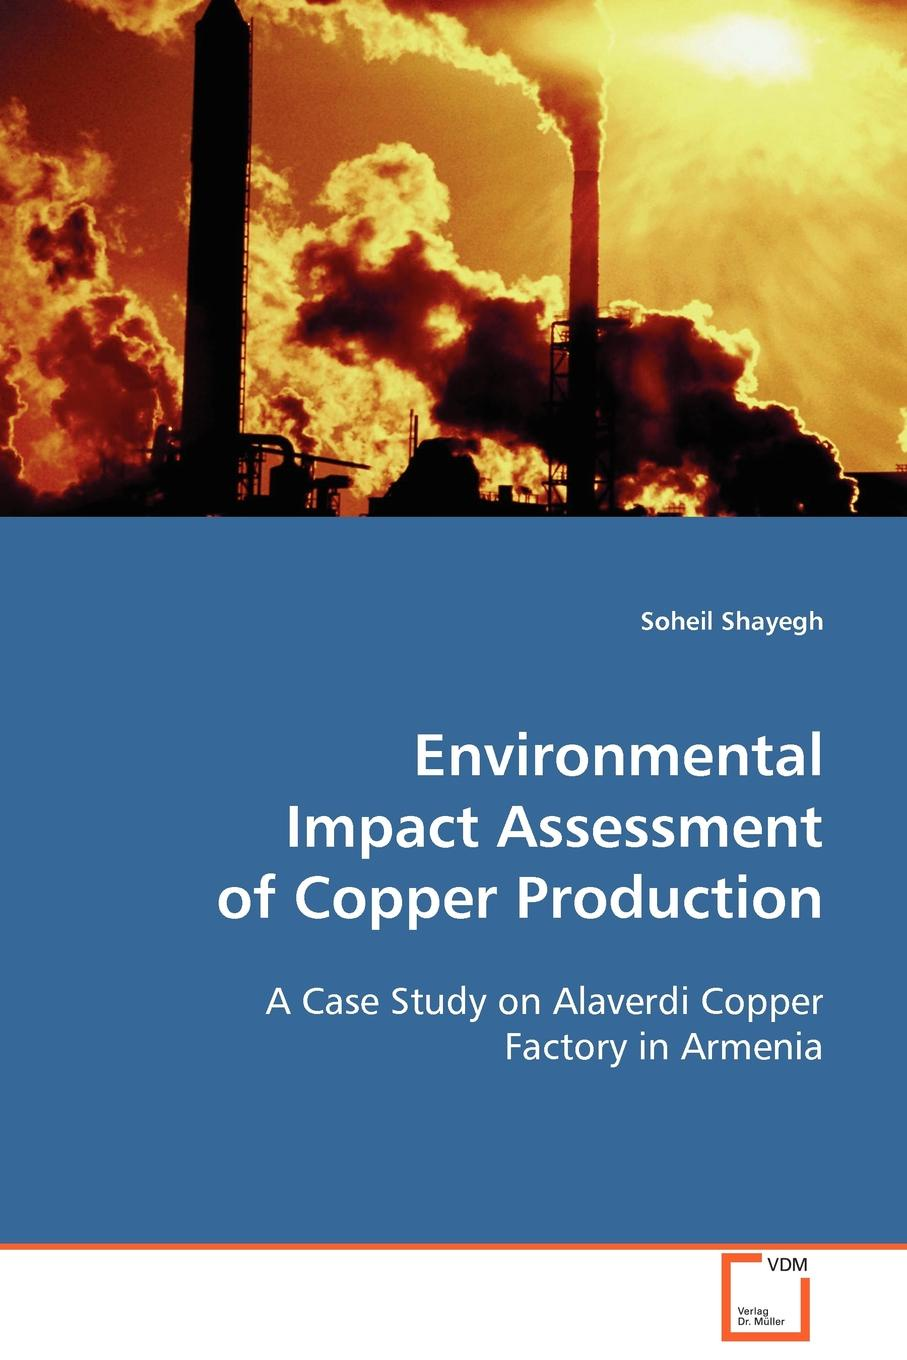 Фото - Soheil Shayegh Environmental Impact Assessment of Copper Production m tauhid ur rahman an environmental impact assessment for proposed housing development